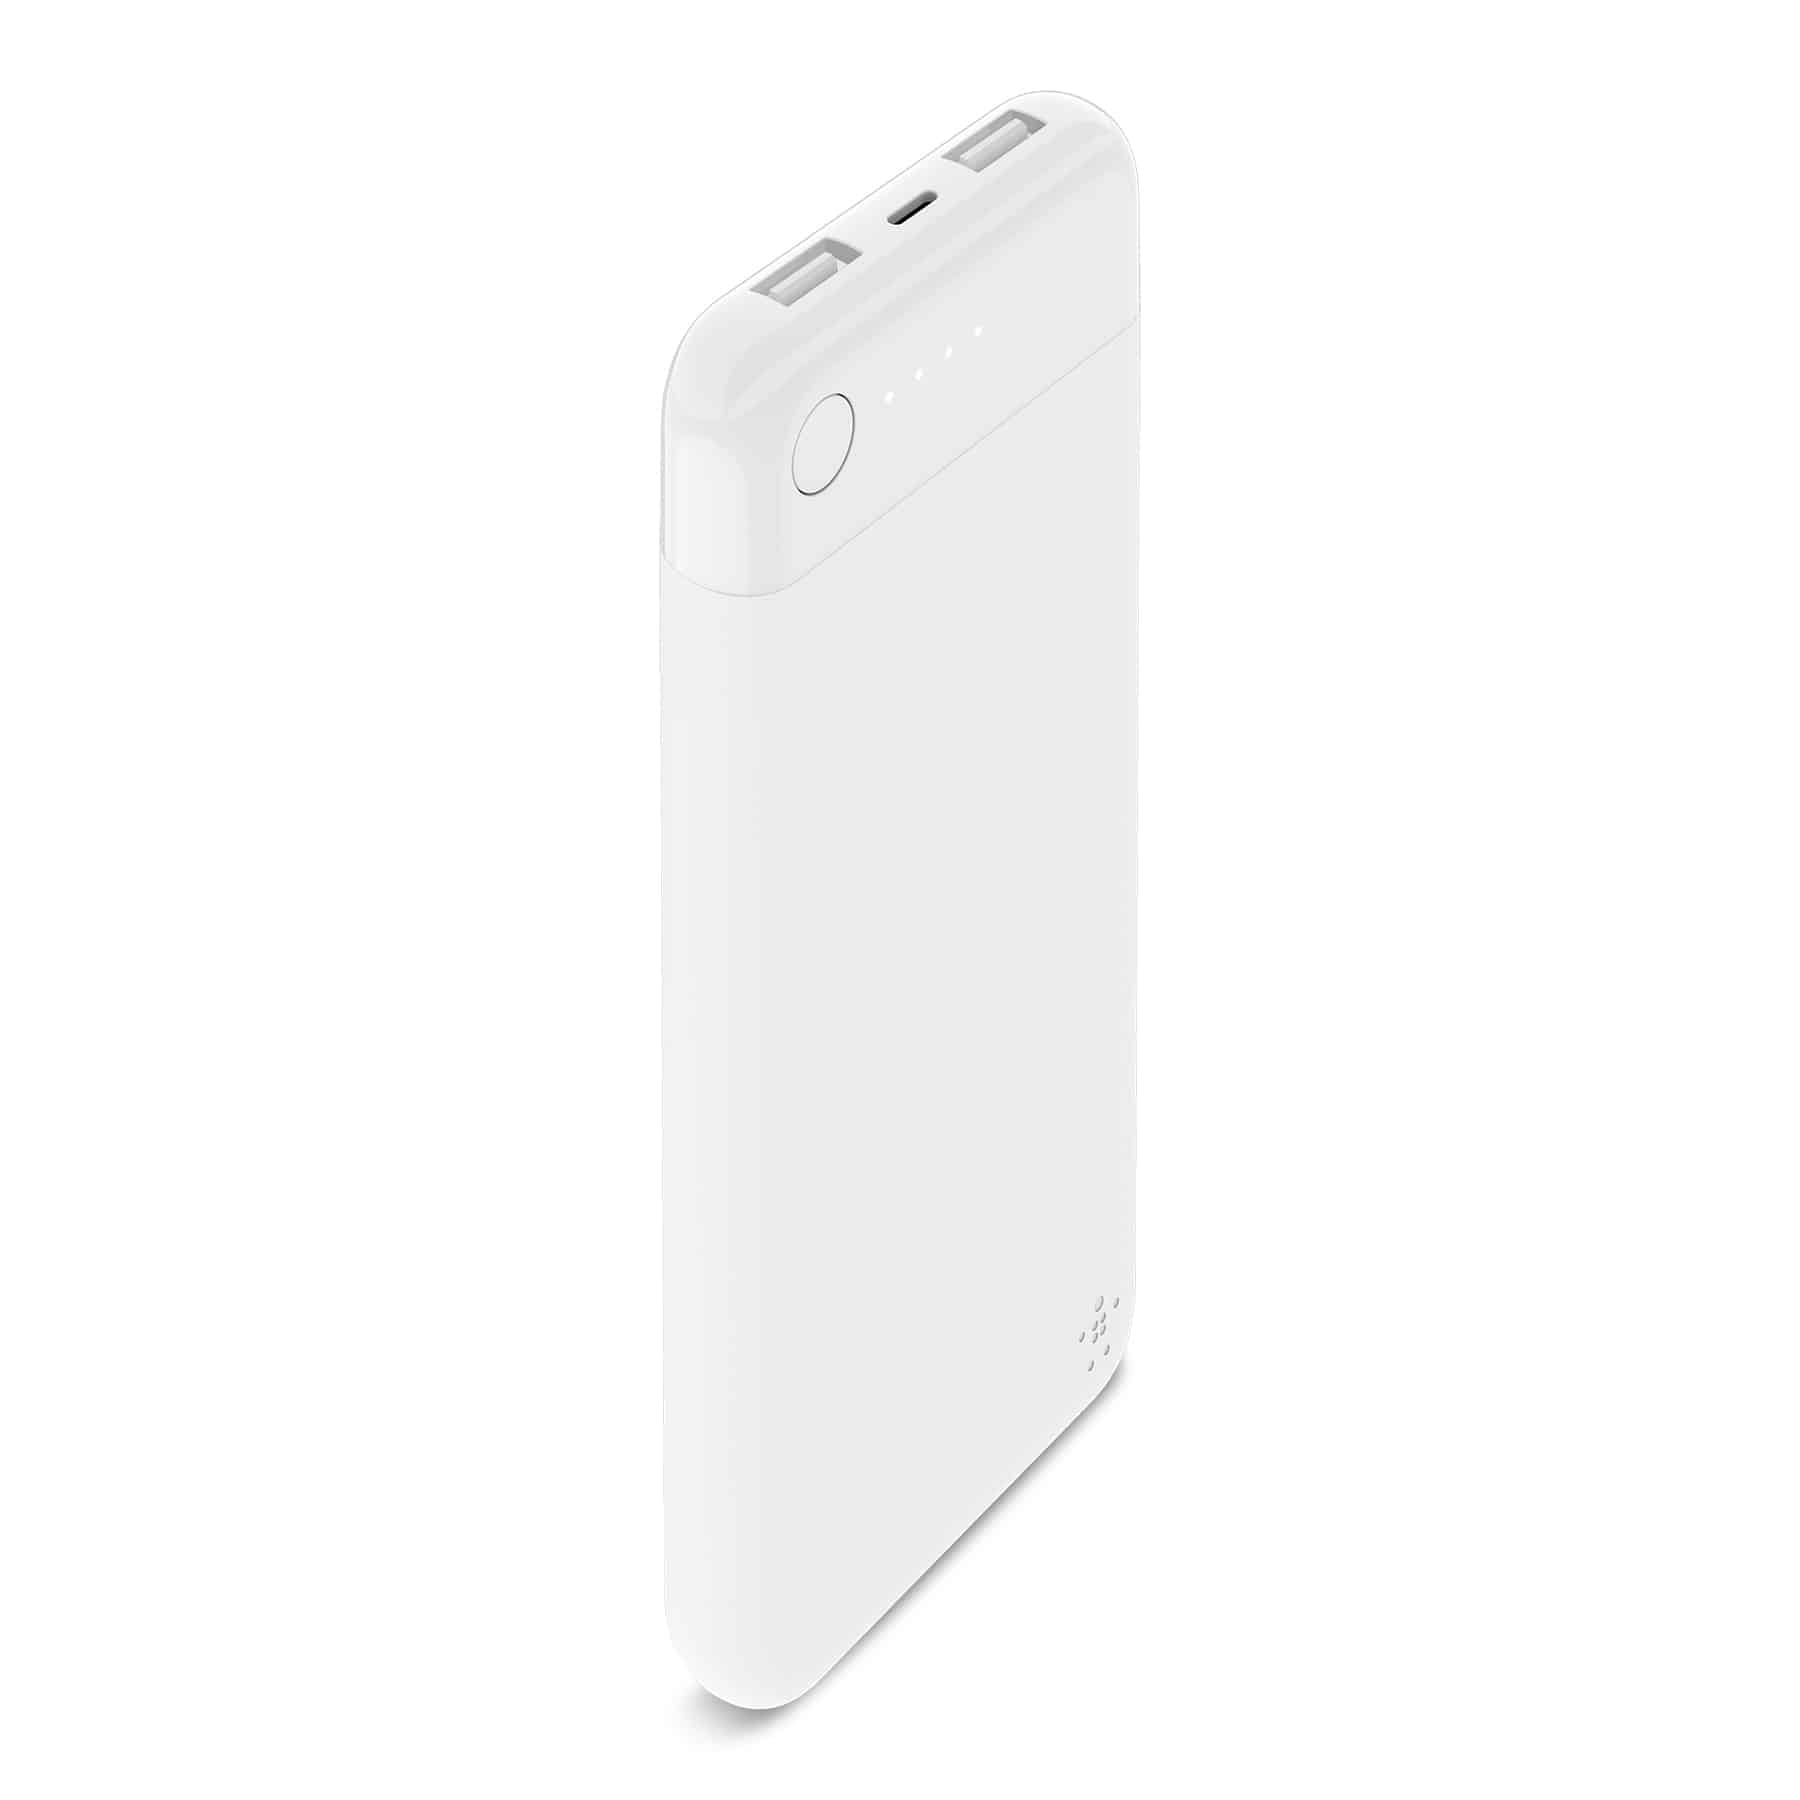 Belkin Boost Charge 10K White F7U046 WHT - Belkin เปิดตัวเพาเวอร์แบงก์ BOOST CHARGE Power Bank 10K with Lightning Connector